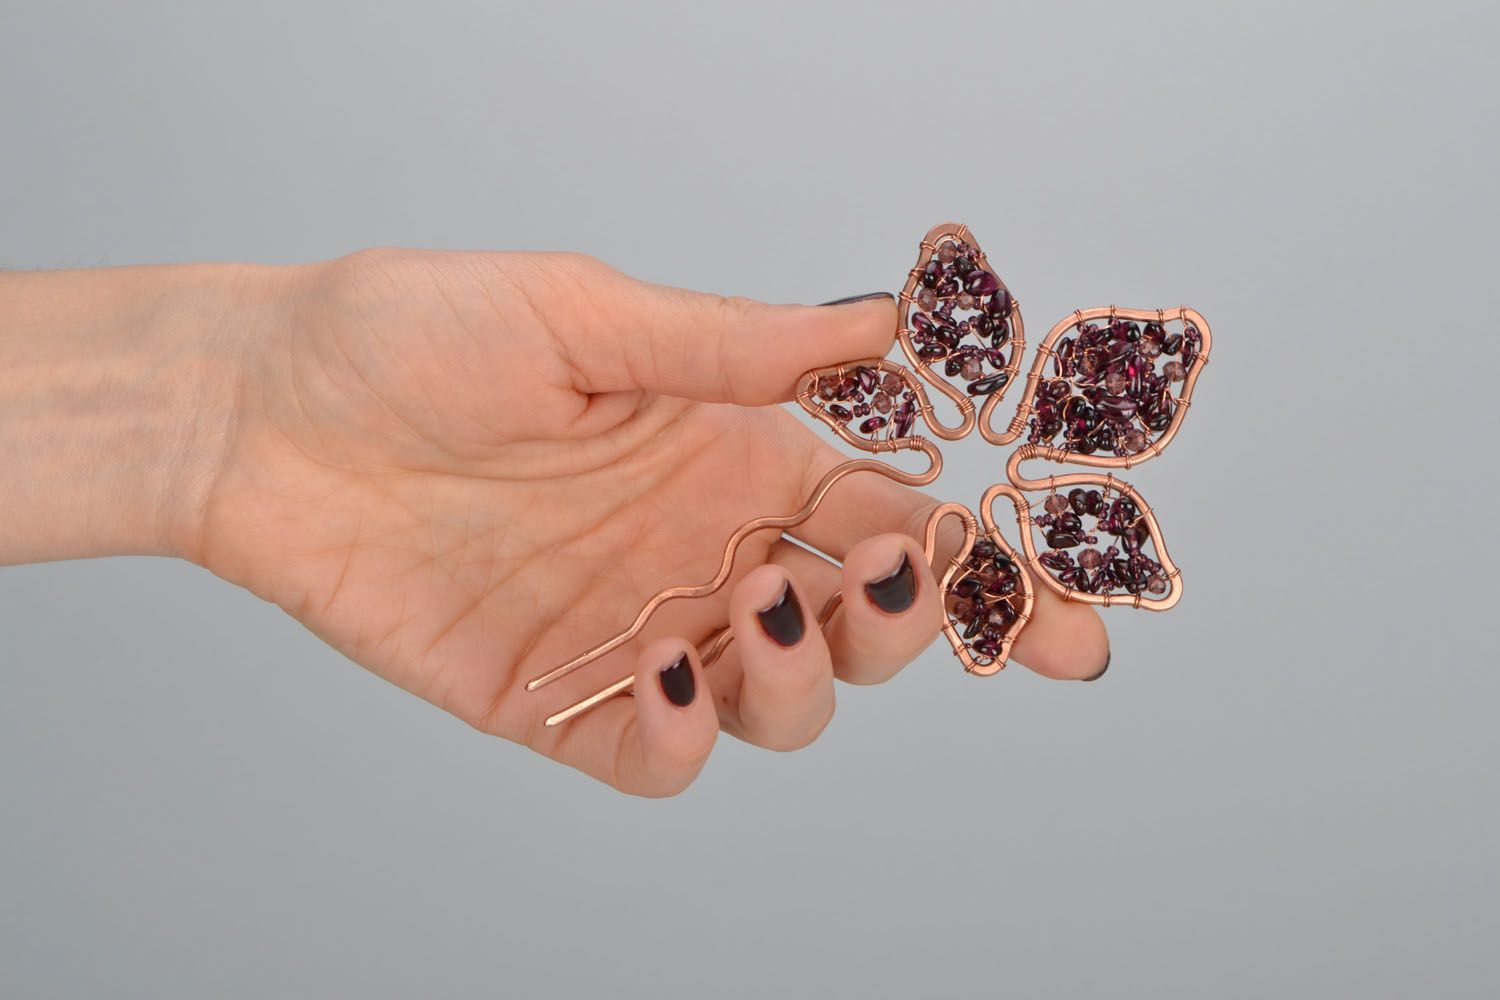 Unusual copper hairpin photo 2